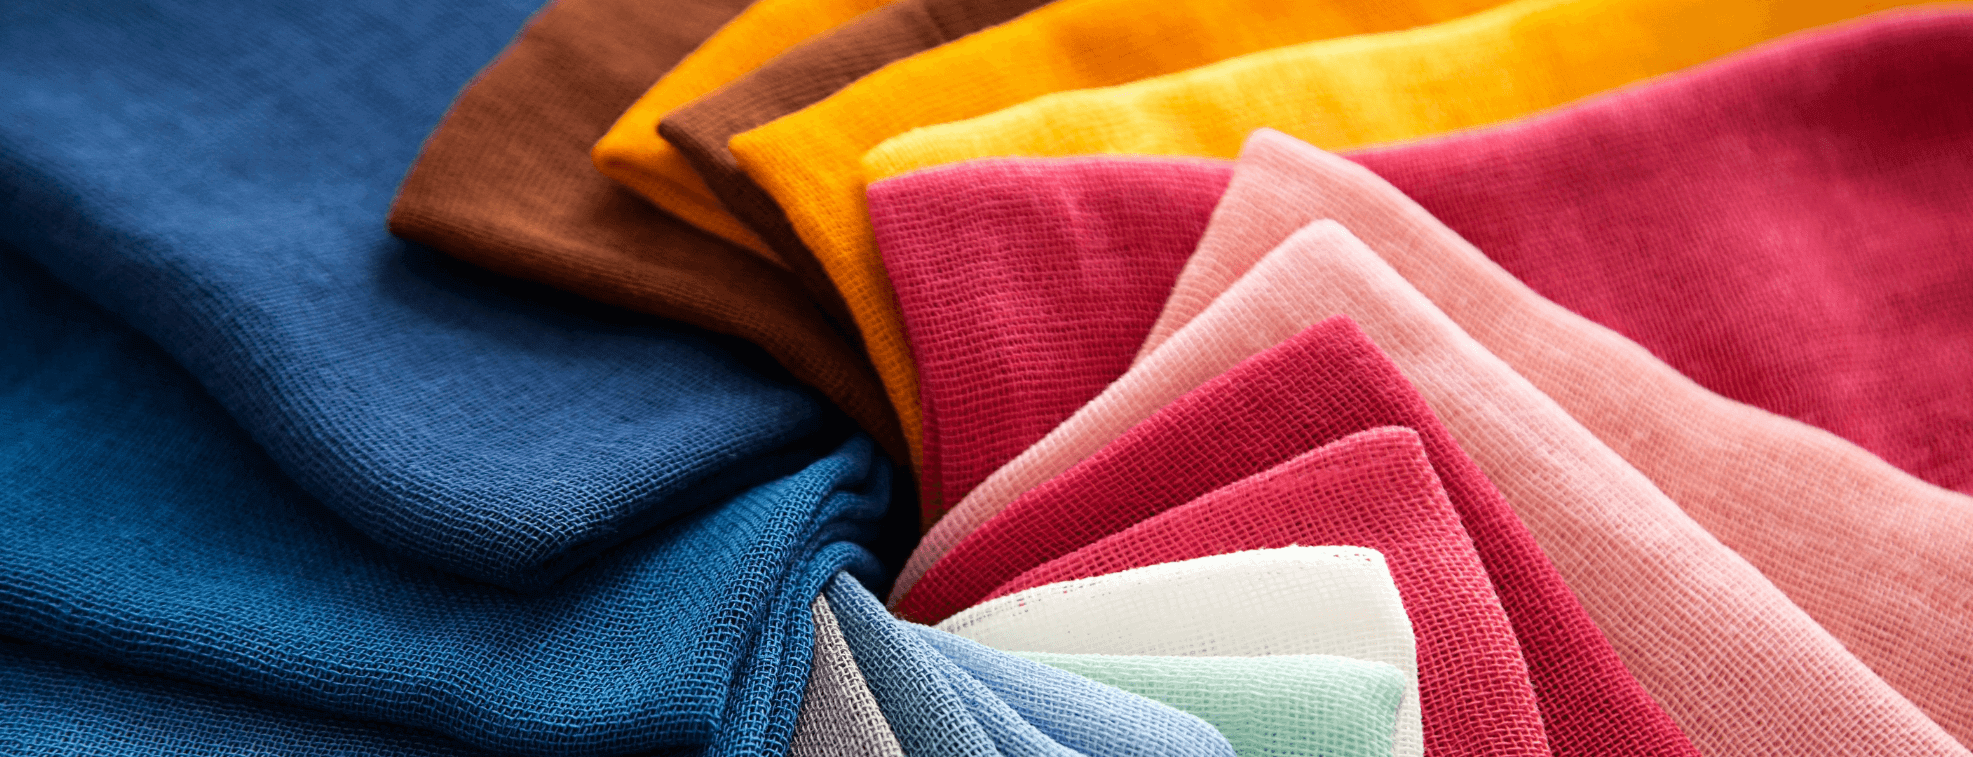 Colorful cotton fabrics